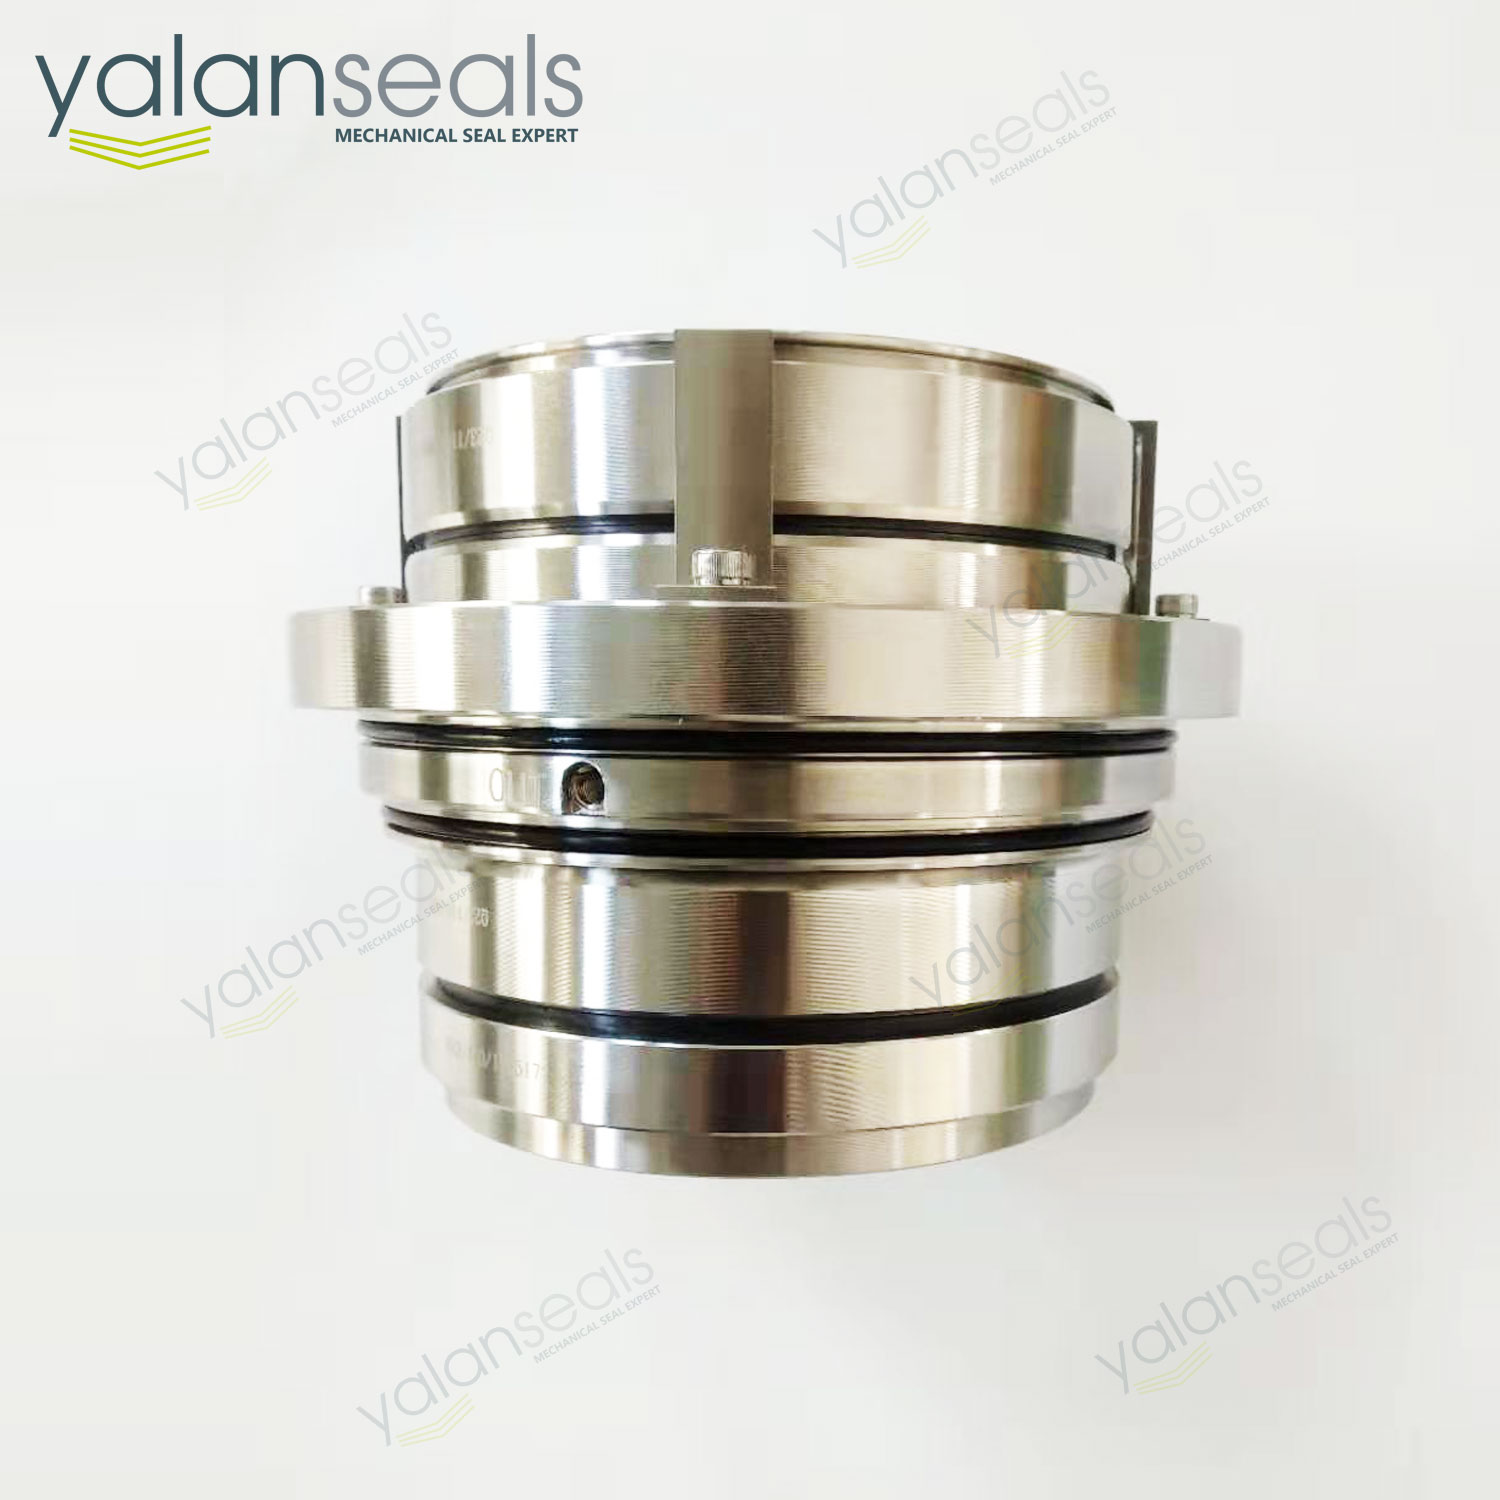 YALAN LP-D-110 Cartridge Mechanical Seal for Paper Pulp Pumps and Sewage Pumps